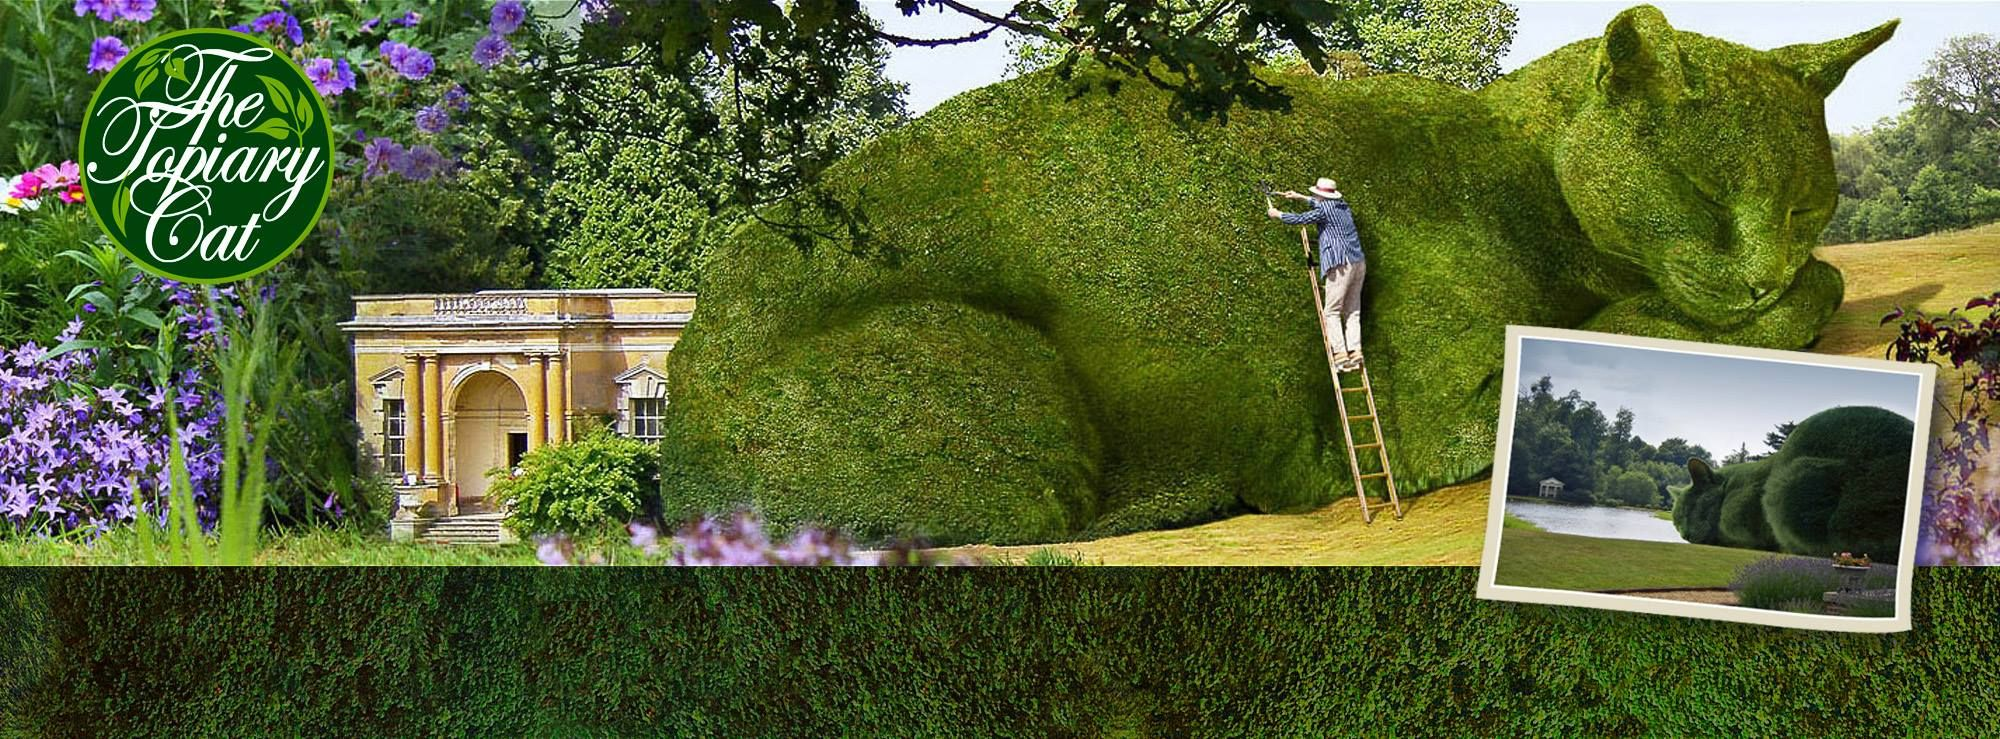 The Topiary Cat, fictional character by Richard Saunders. http://www ...